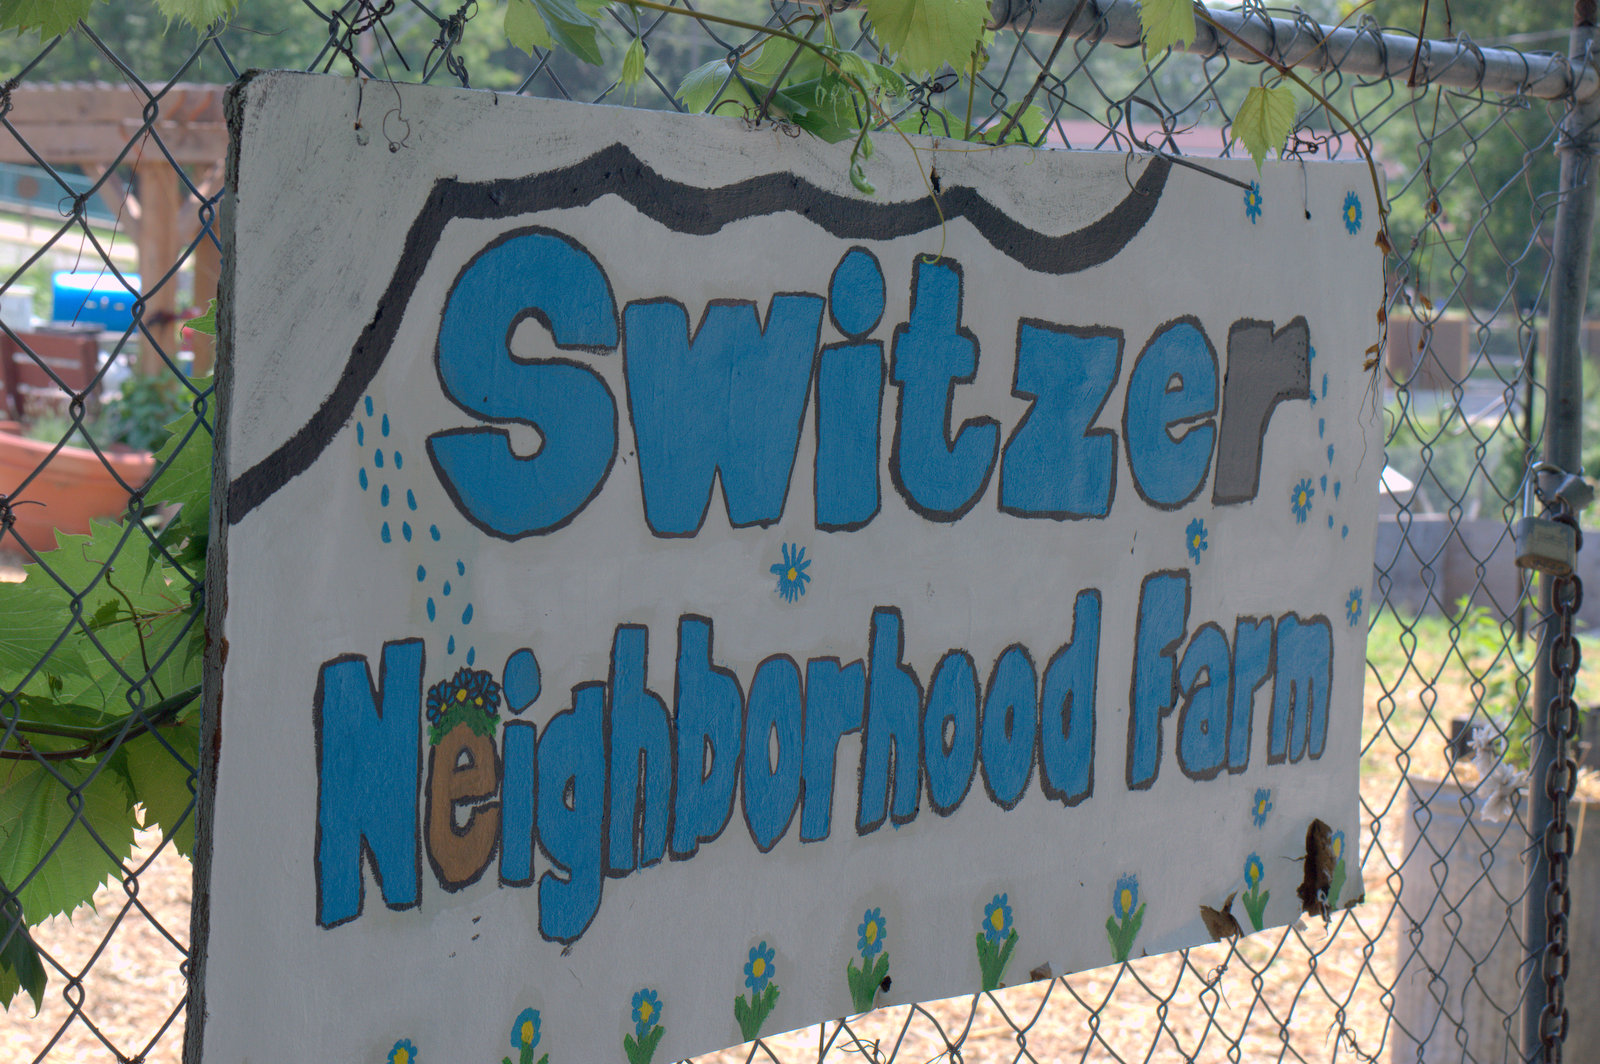 Switzer Neighborhood Farm